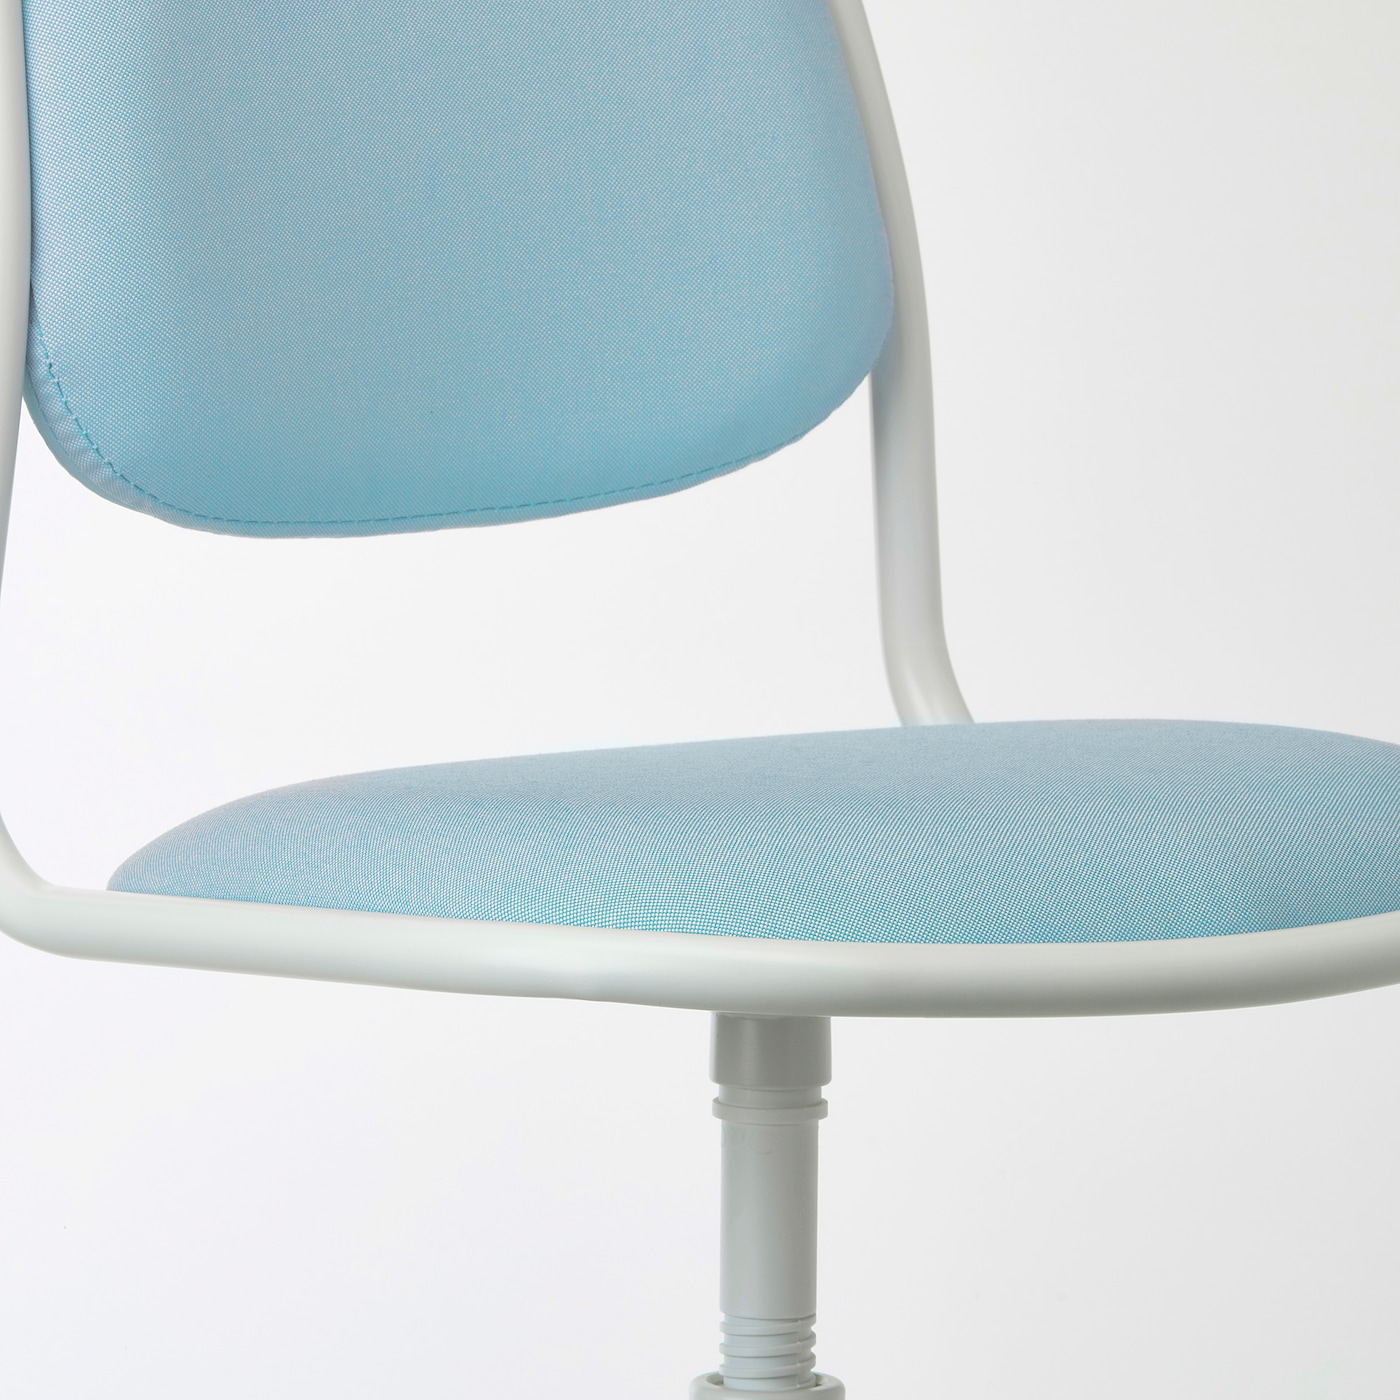 Picture of: Orfjall White Vissle Blue Green Children S Desk Chair Ikea